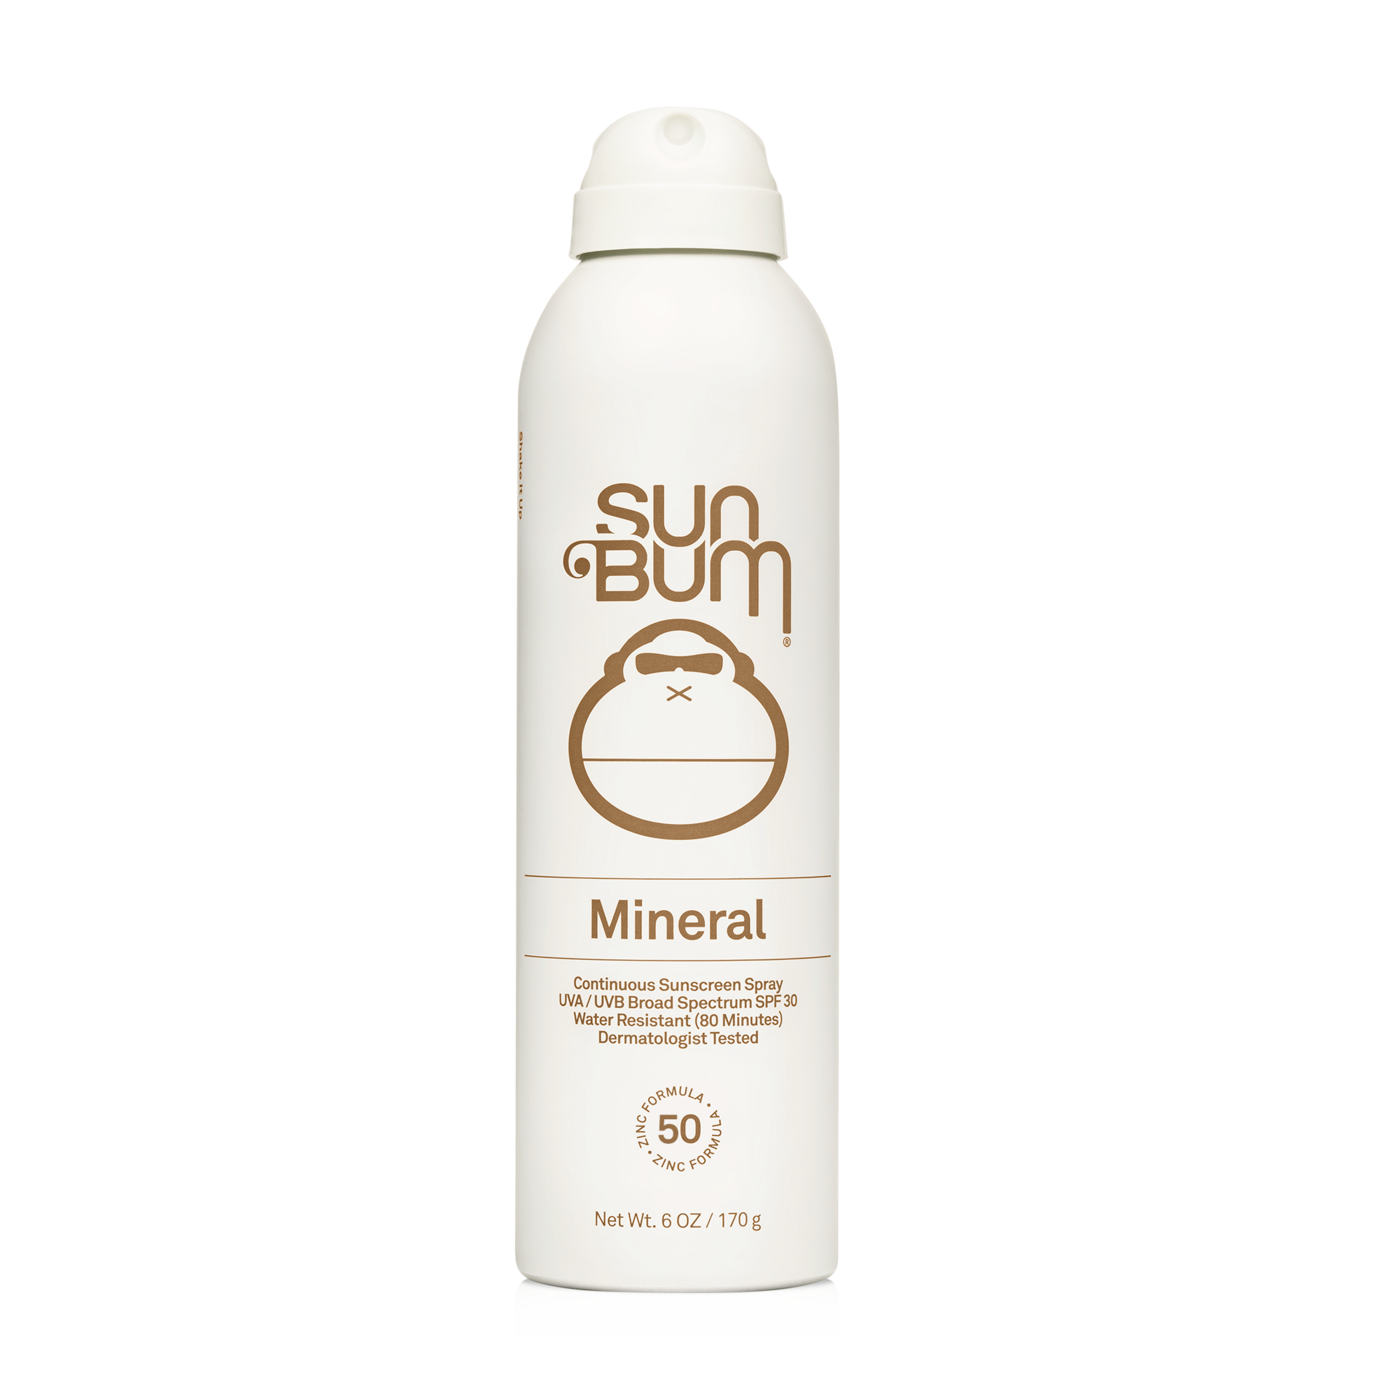 SUN BUM MINERAL SPF 30 SUNSCREEN SPRAY